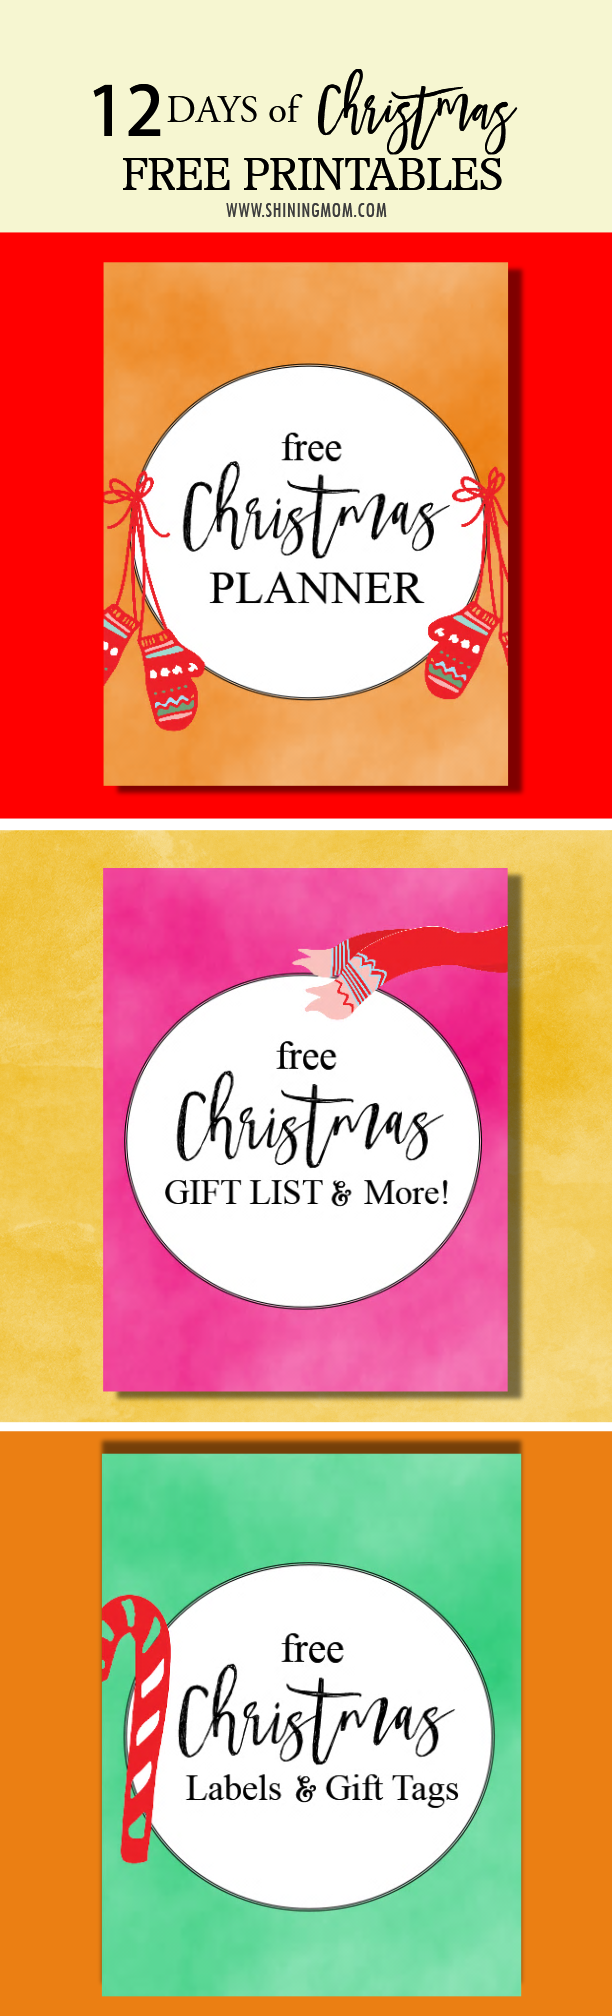 86 Free Christmas Printables Tags 742 Best Printable Labels And